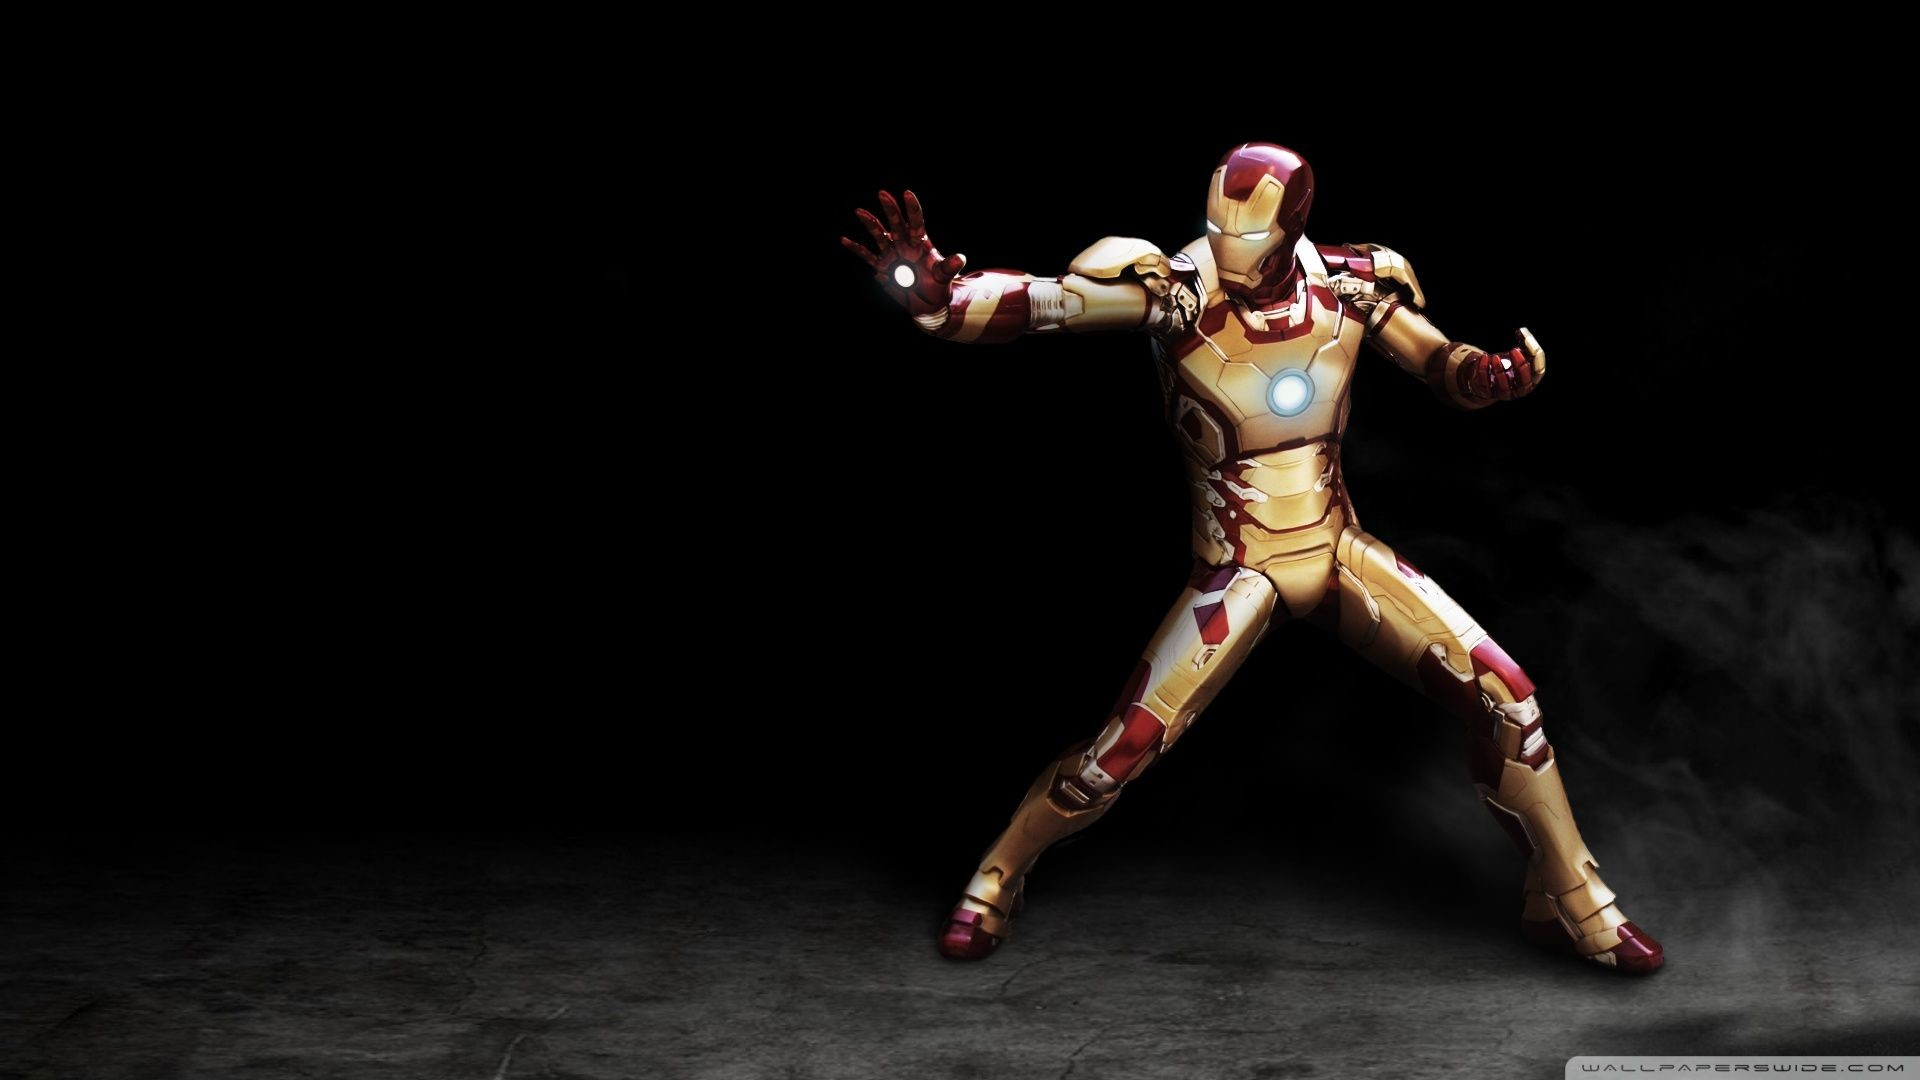 1920x1080 Iron Man 3 HD Wallpaper Full HD [] - Free wallpaper full .